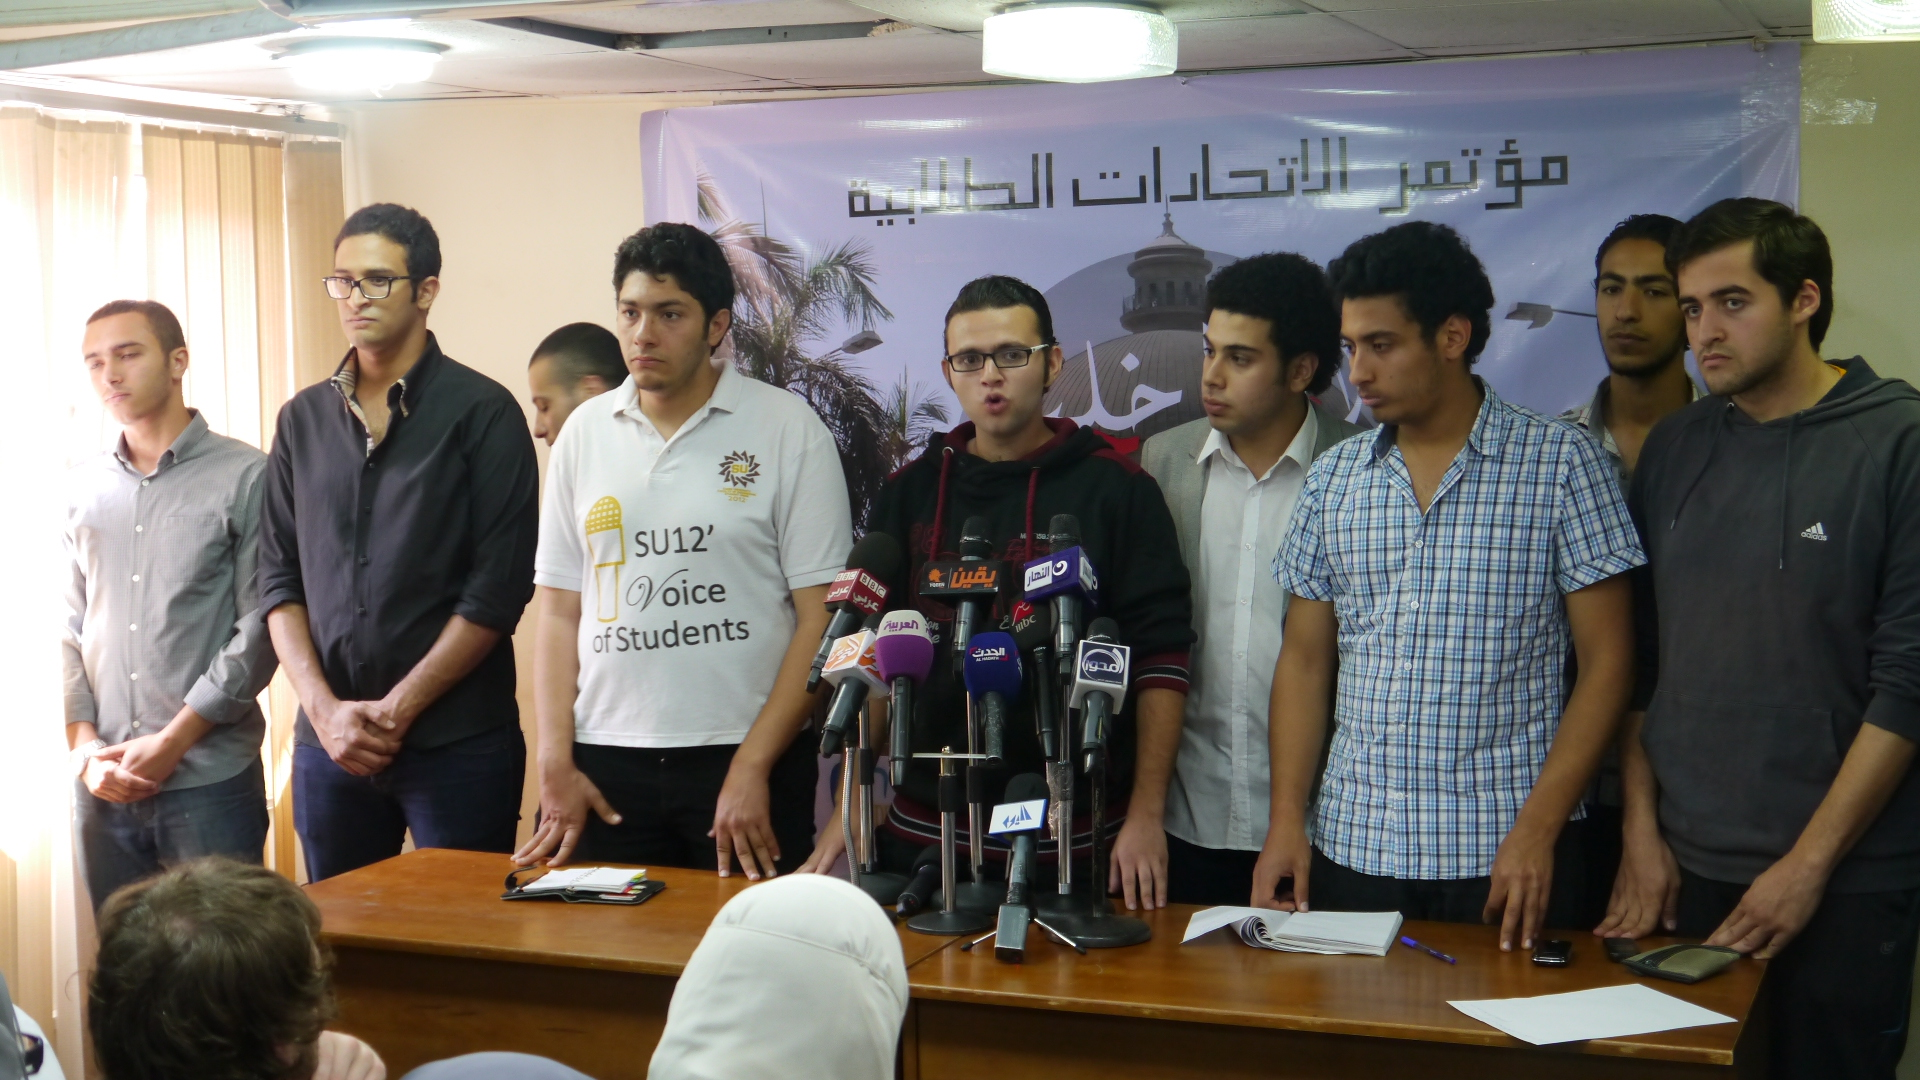 Representatives from the student unions of Cairo University in a presser on Tuesday criticised the security situation on campus. (Photo by/ AbdelHalim H. AbdAllah)